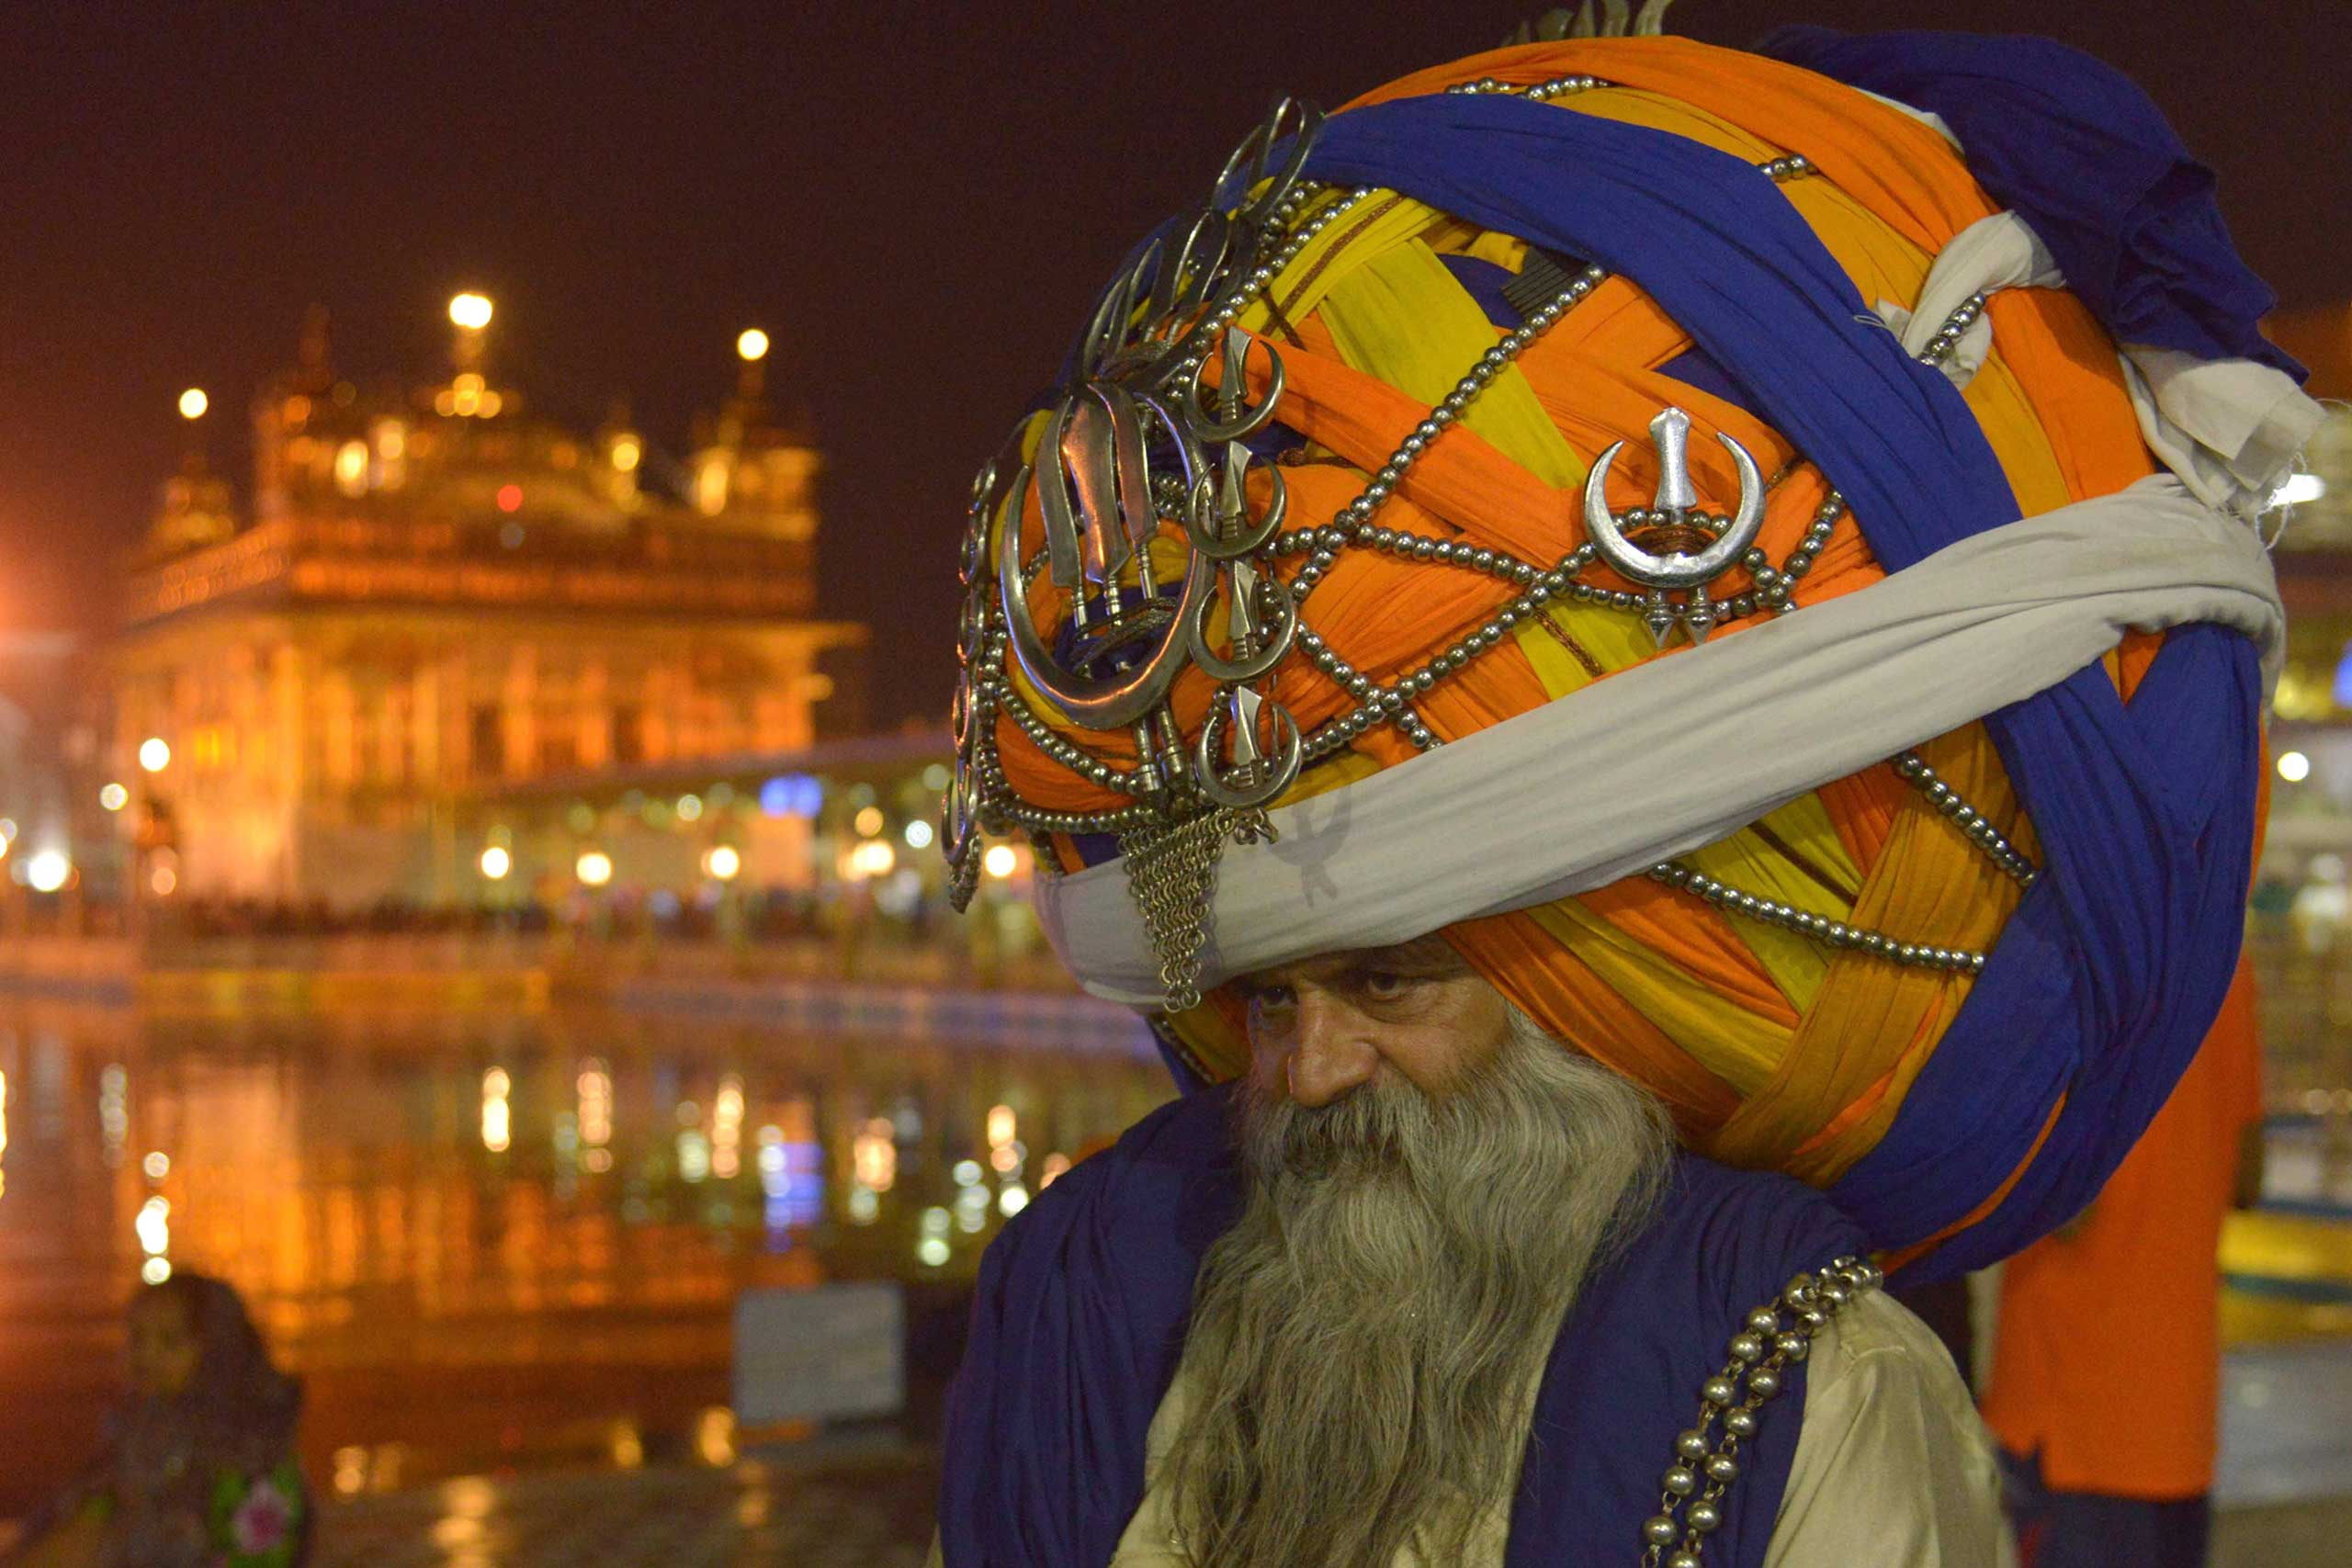 An Indian Sikh Nihang (a traditional Sikh religious warrior) Baba 'Avtar' Singh wears an oversized giant traditional turban as he pay respects at the Golden temple in Amritsar on the eve of Diwali, on Nov. 10, 2015.